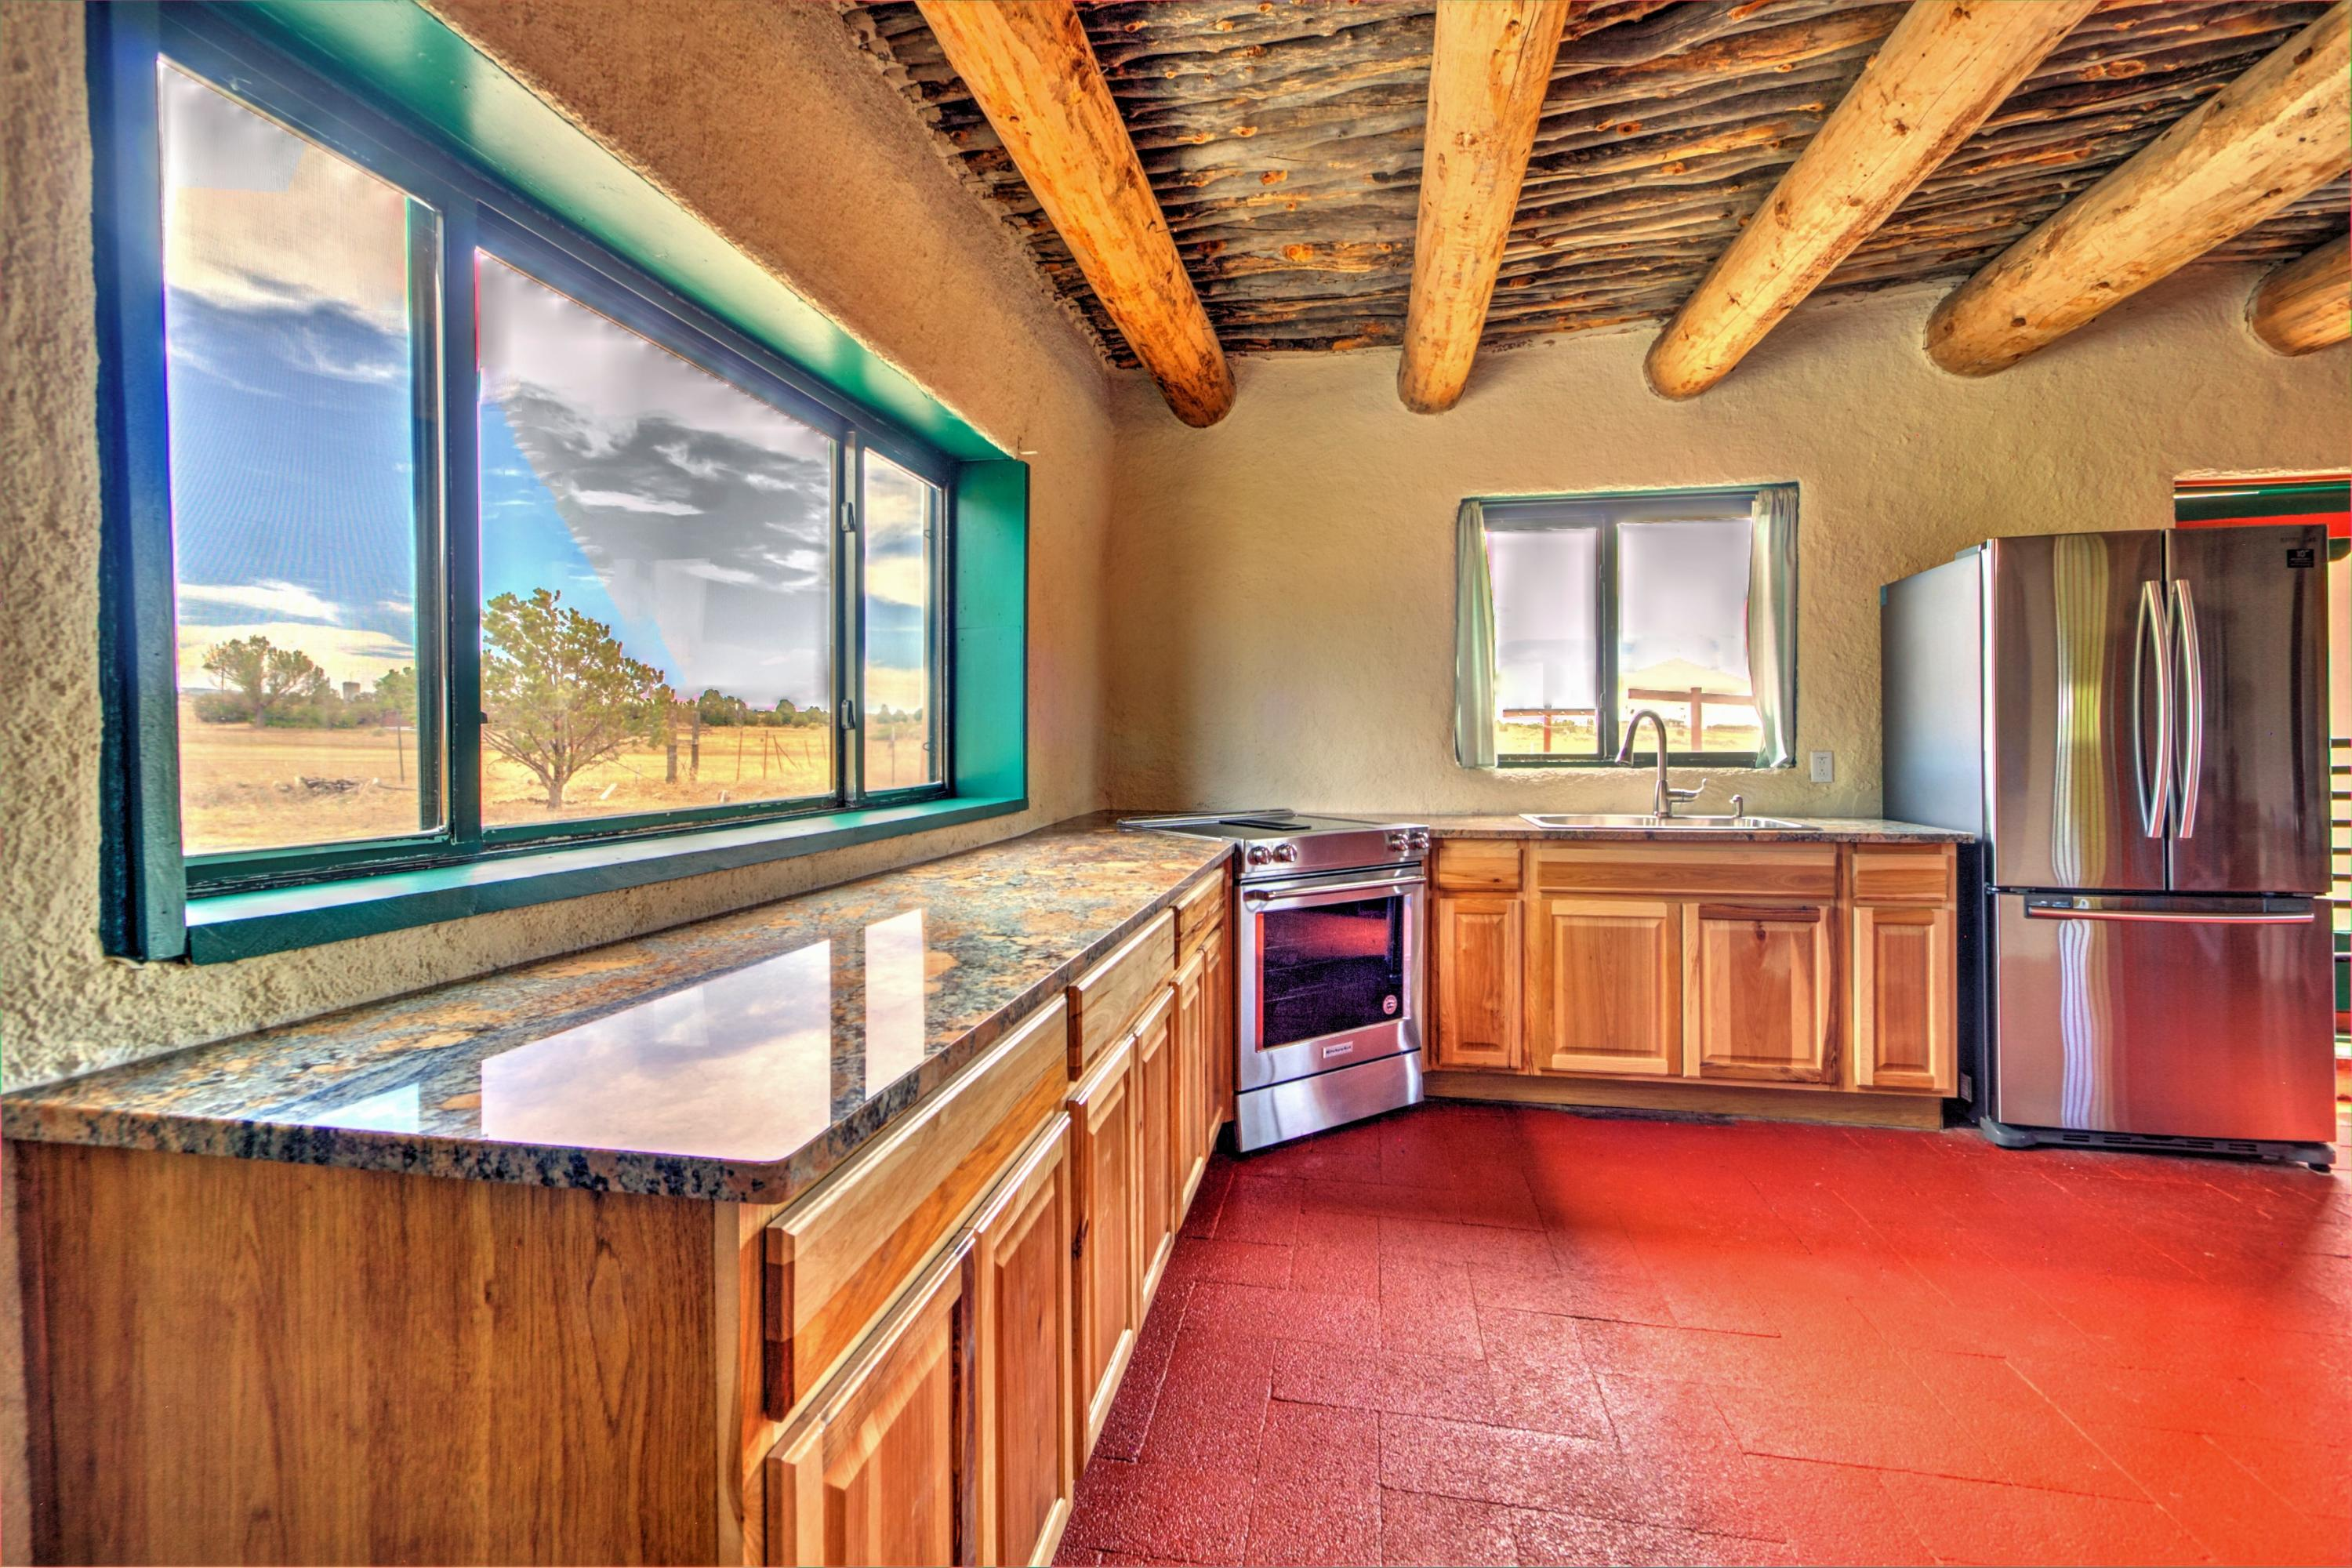 104 New Mexico State 496 Road Property Photo - La Jara, NM real estate listing